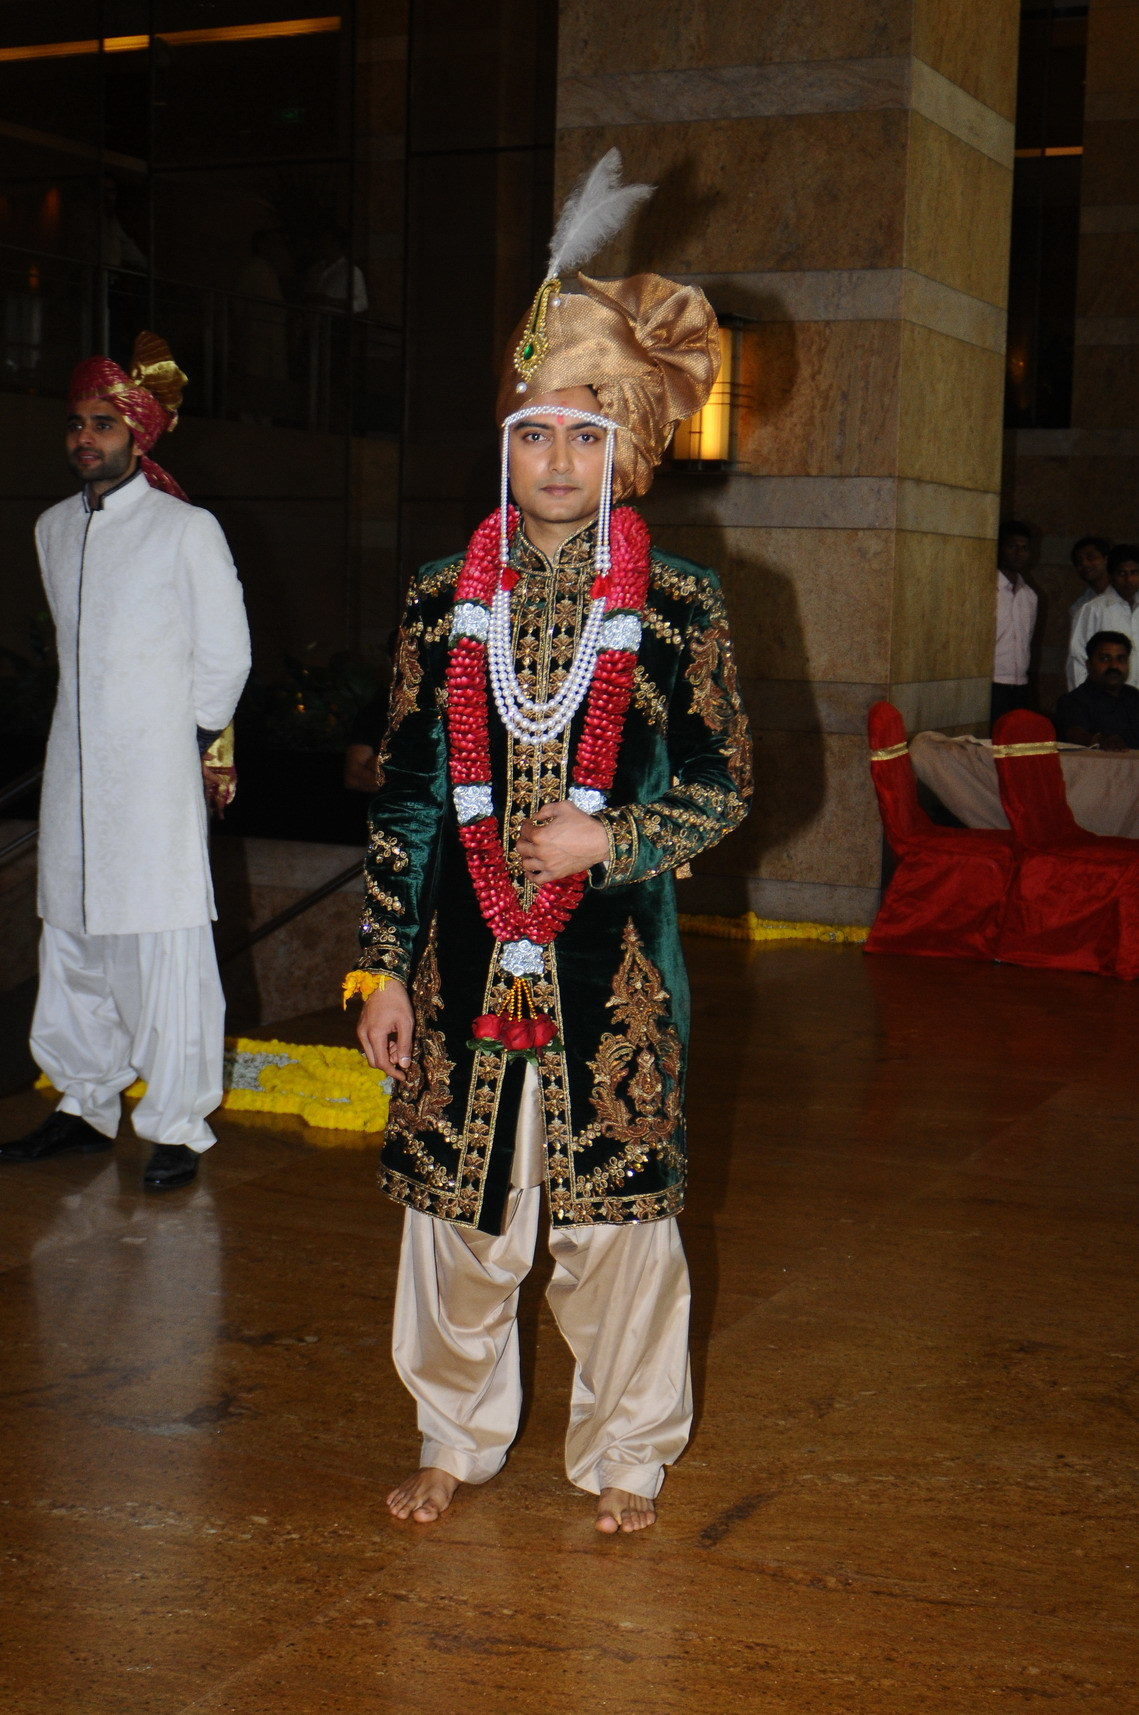 brother of ritesh deshmukh dheeraj deshmukh at his wedding